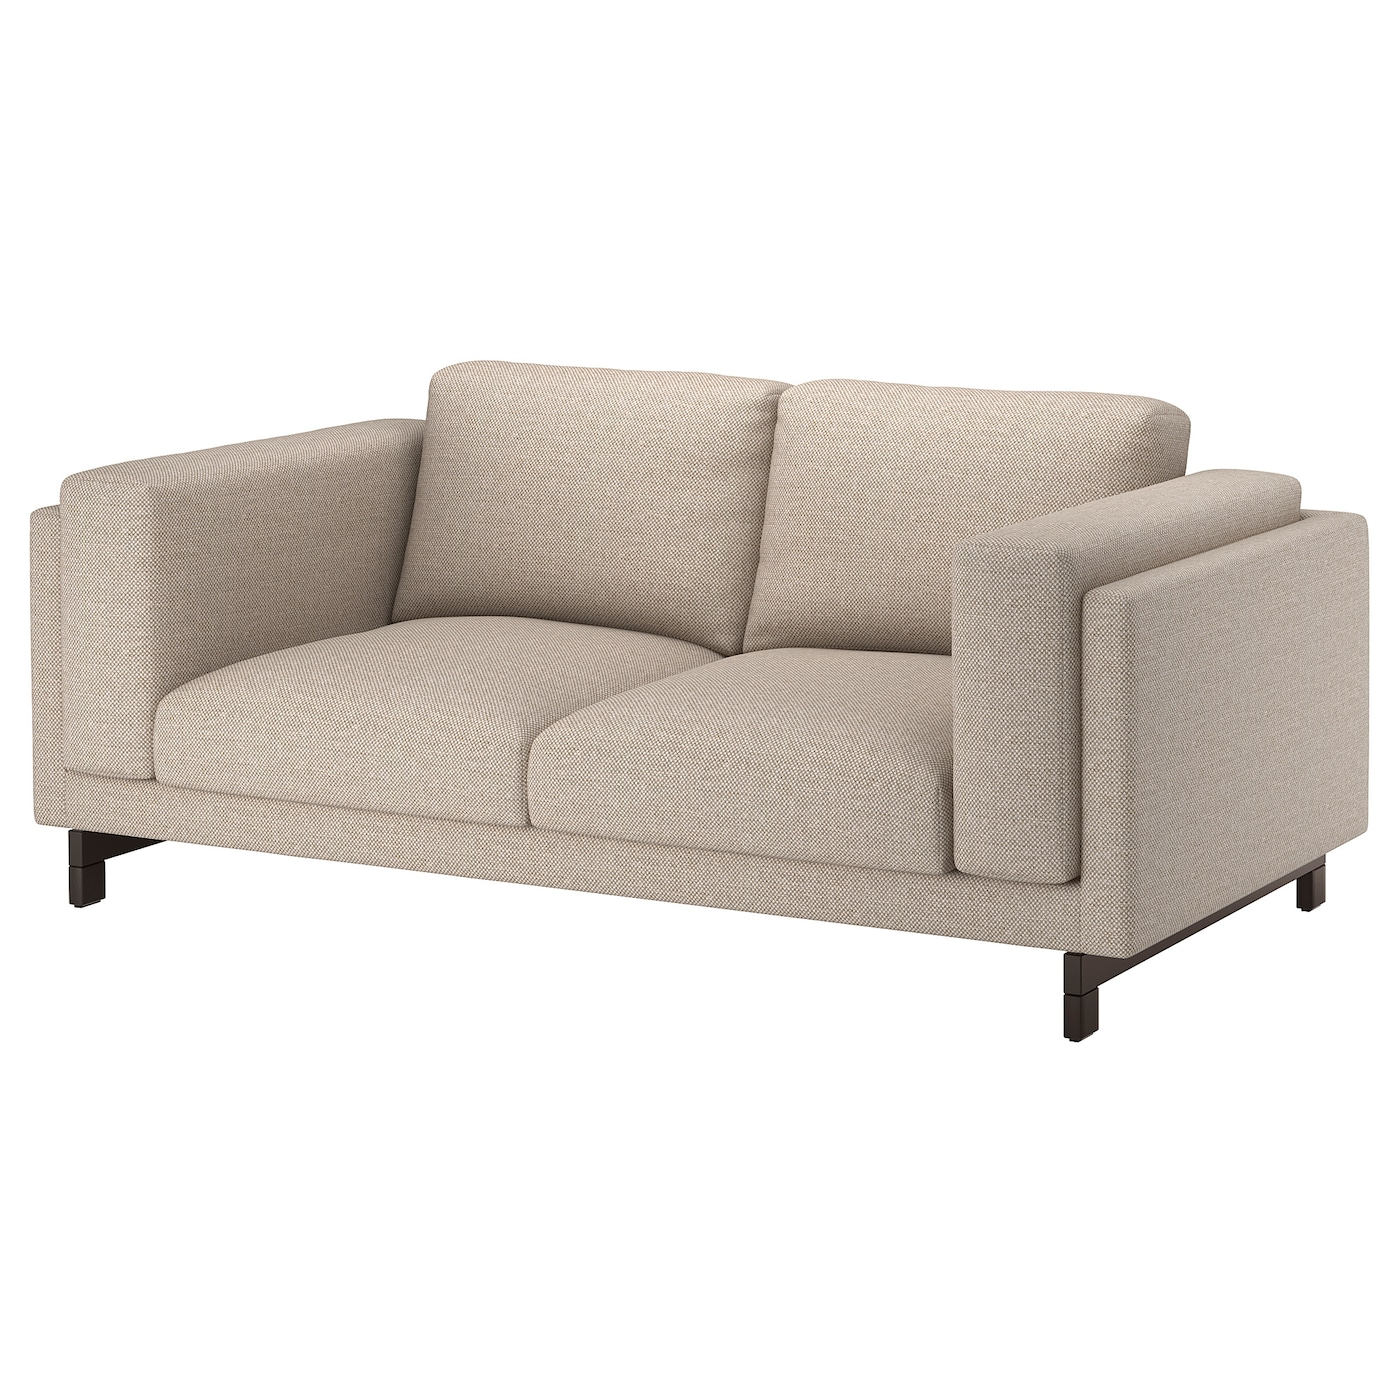 Ikea Nockeby Two Seat Sofa 10 Year Guarantee Read About The Terms In